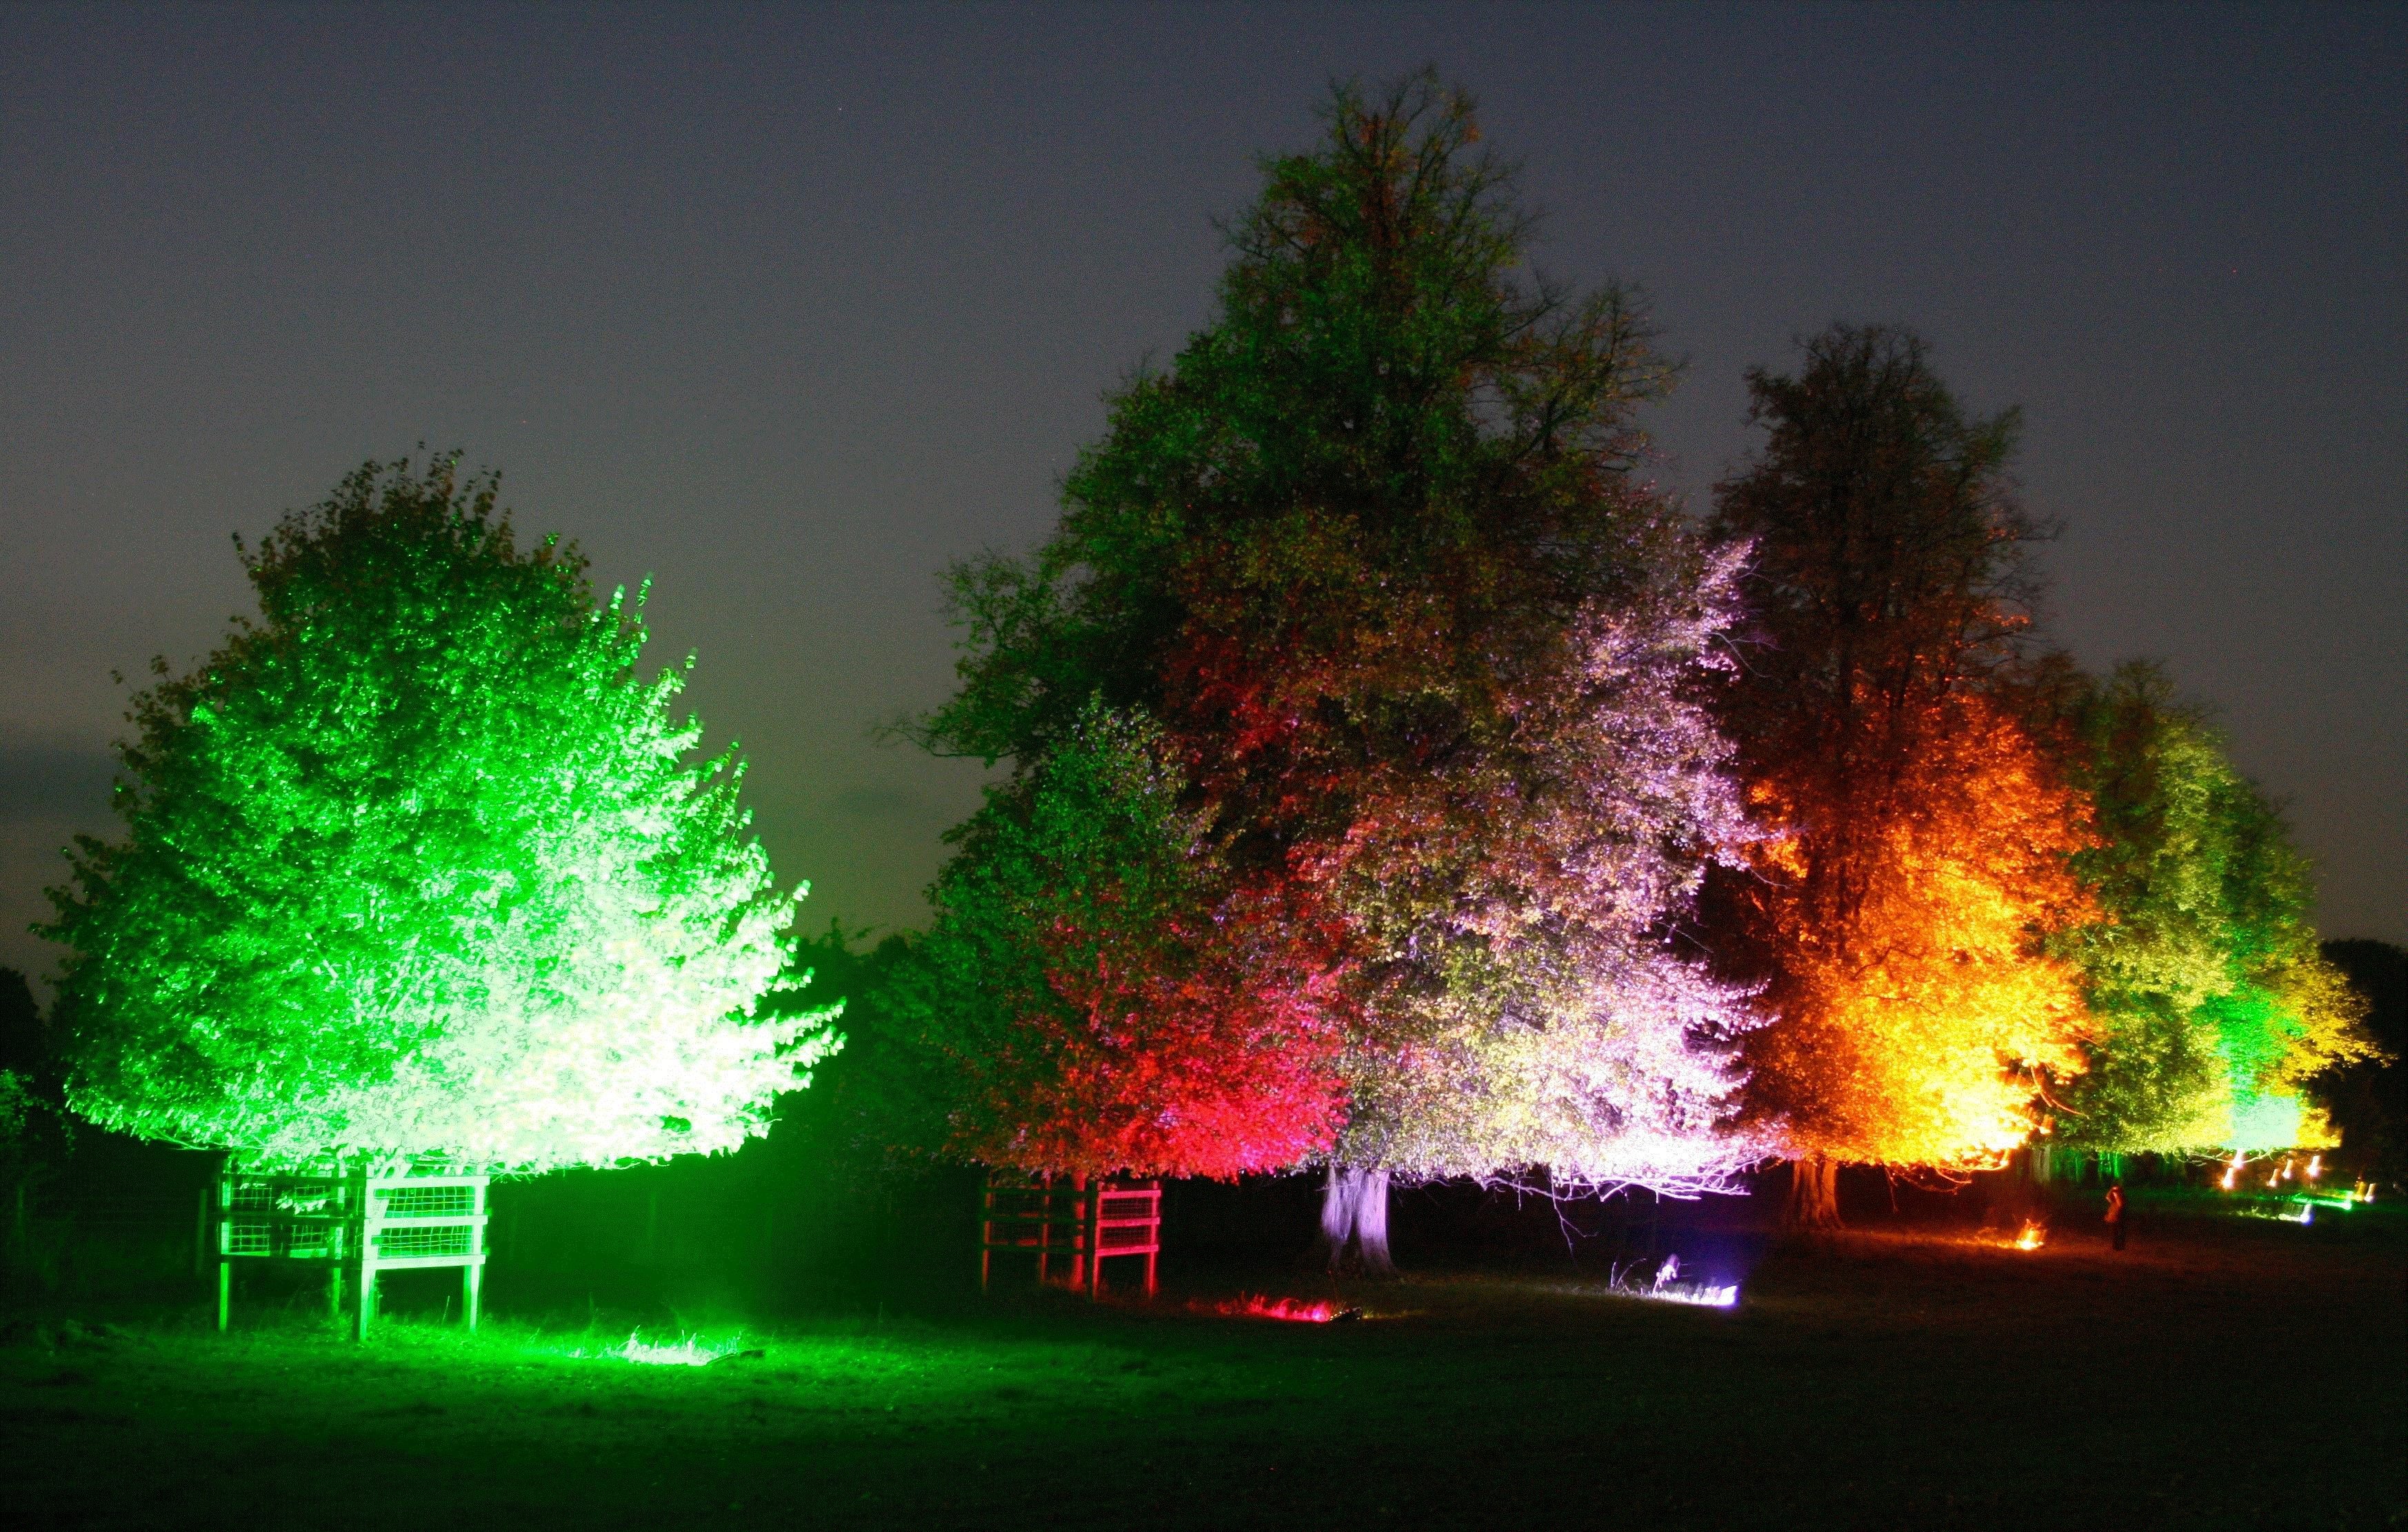 Mature trees at night lit up by coloured lights